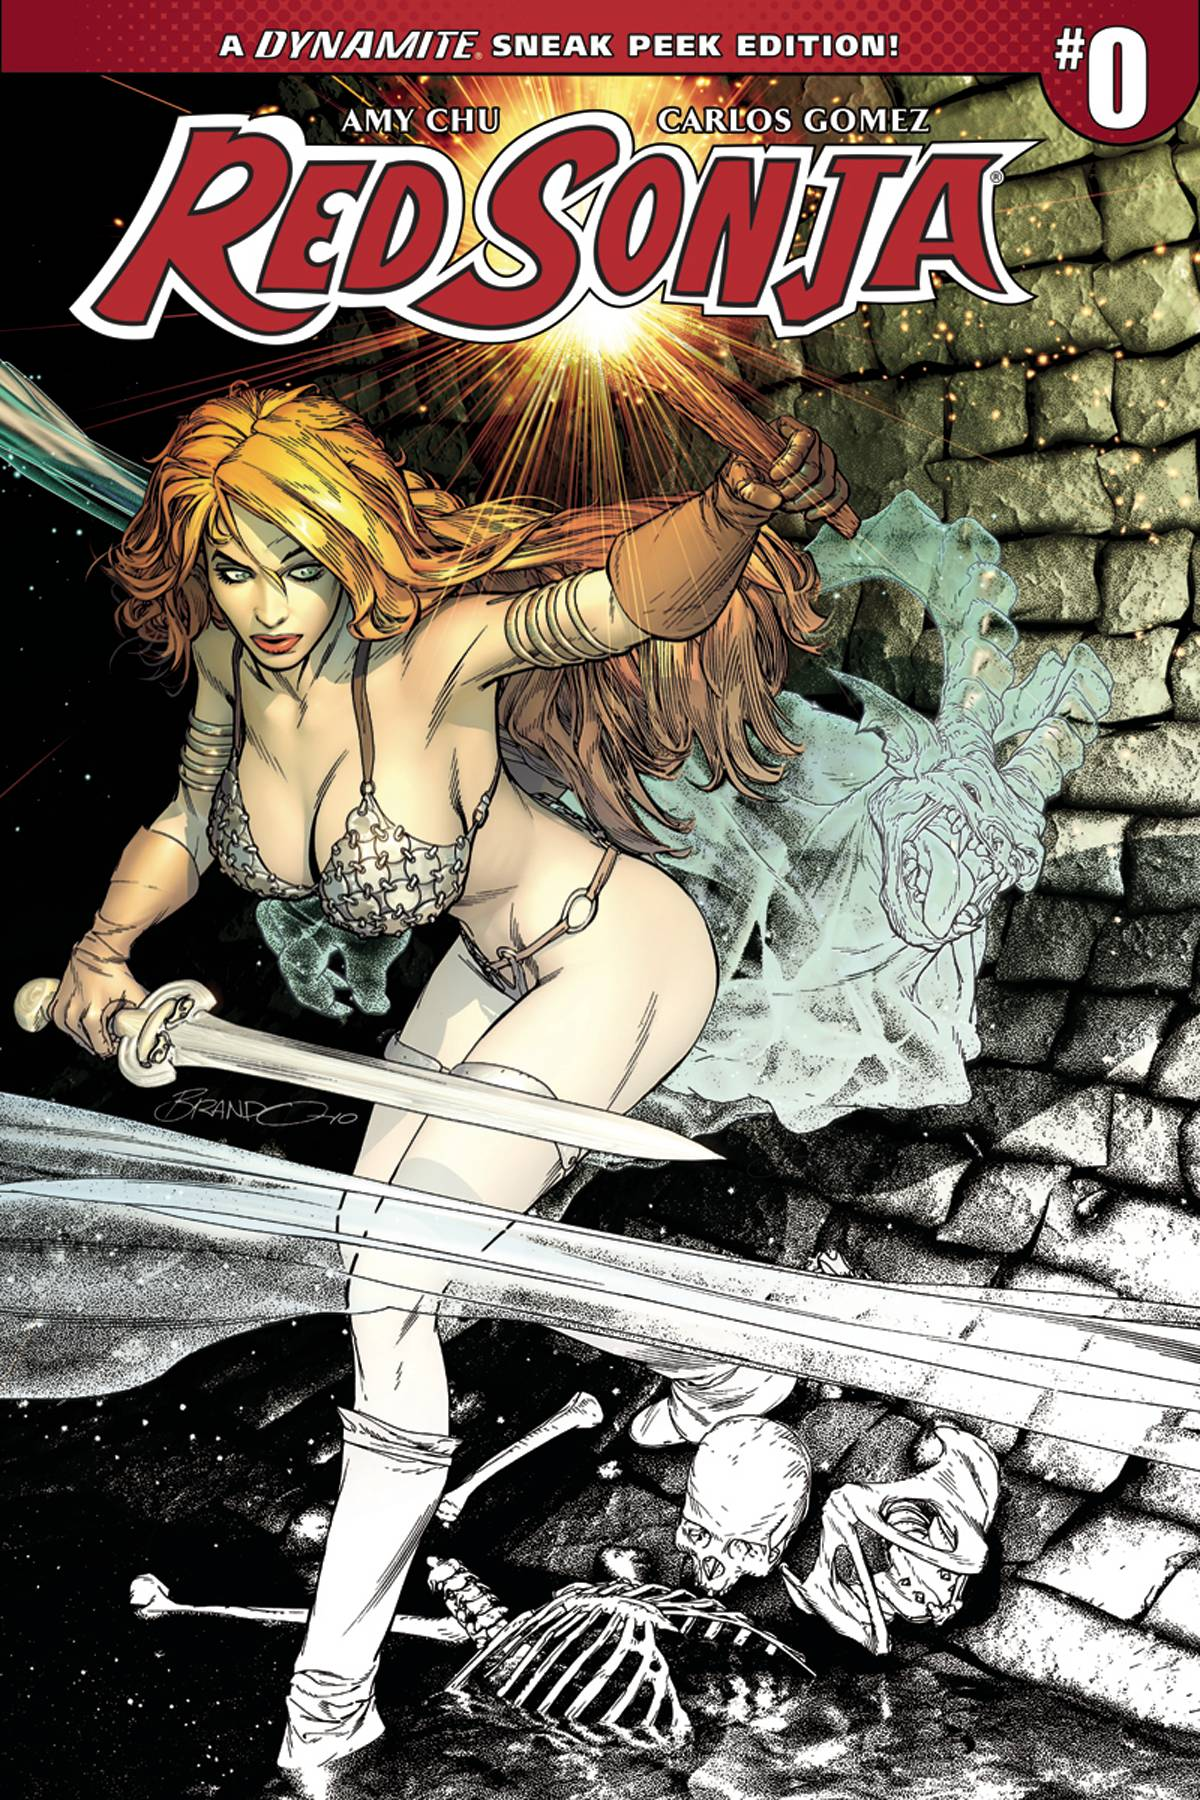 RED SONJA #0 CVR B 50 COPY PETERSON SNEAK PEEK INCV